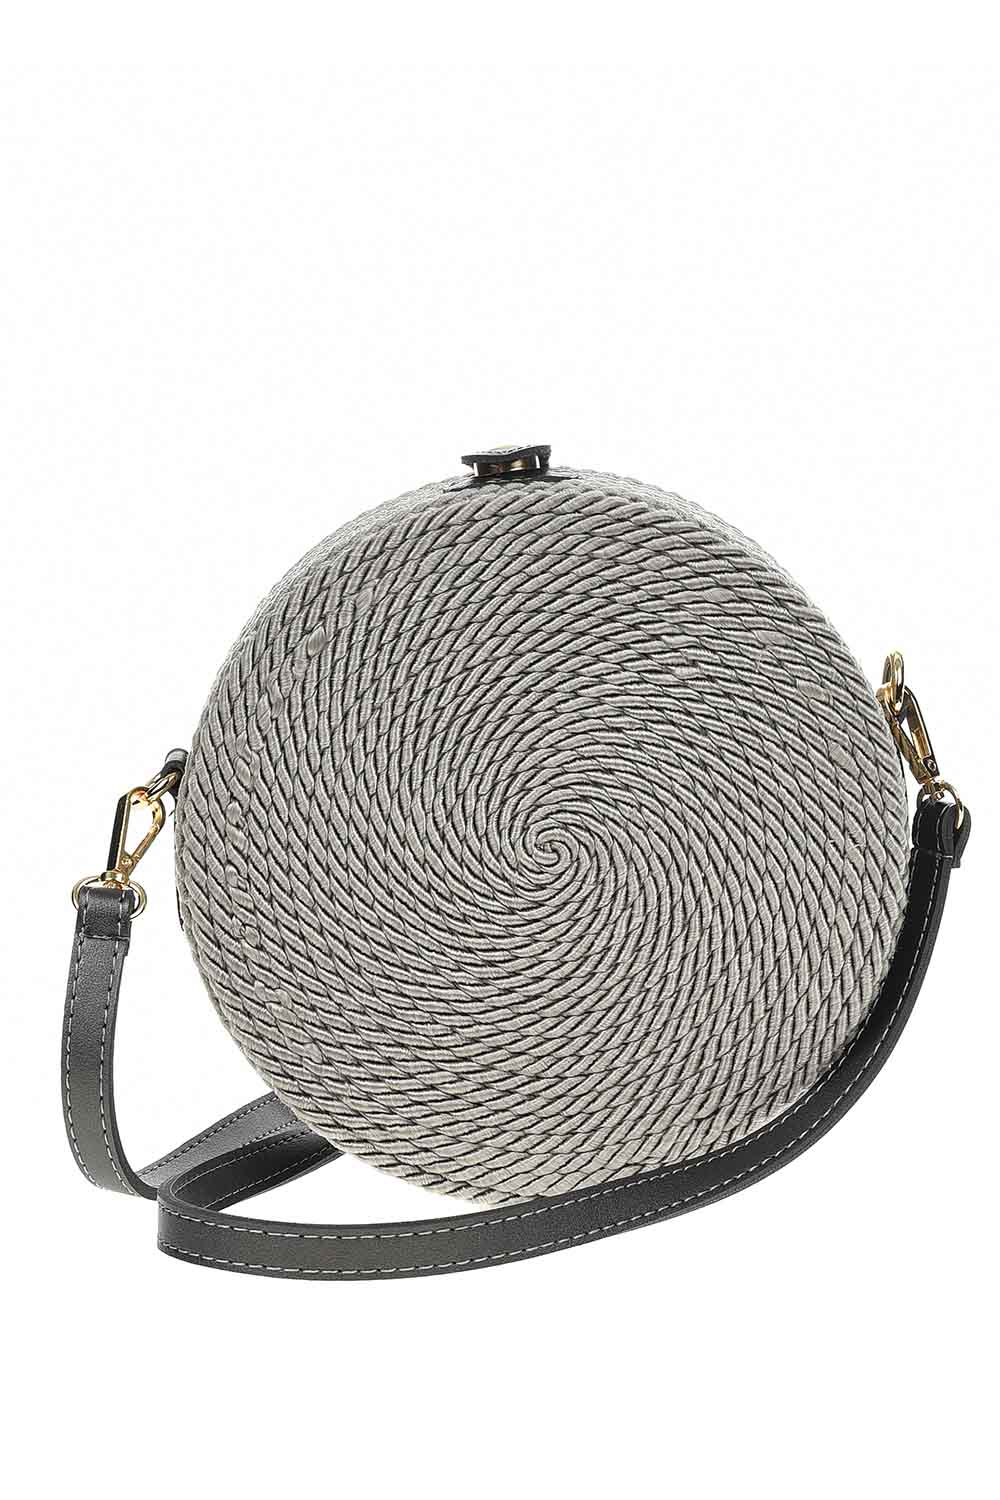 MIZALLE Knitting Drawstring Shoulder Bag (Grey) (1)